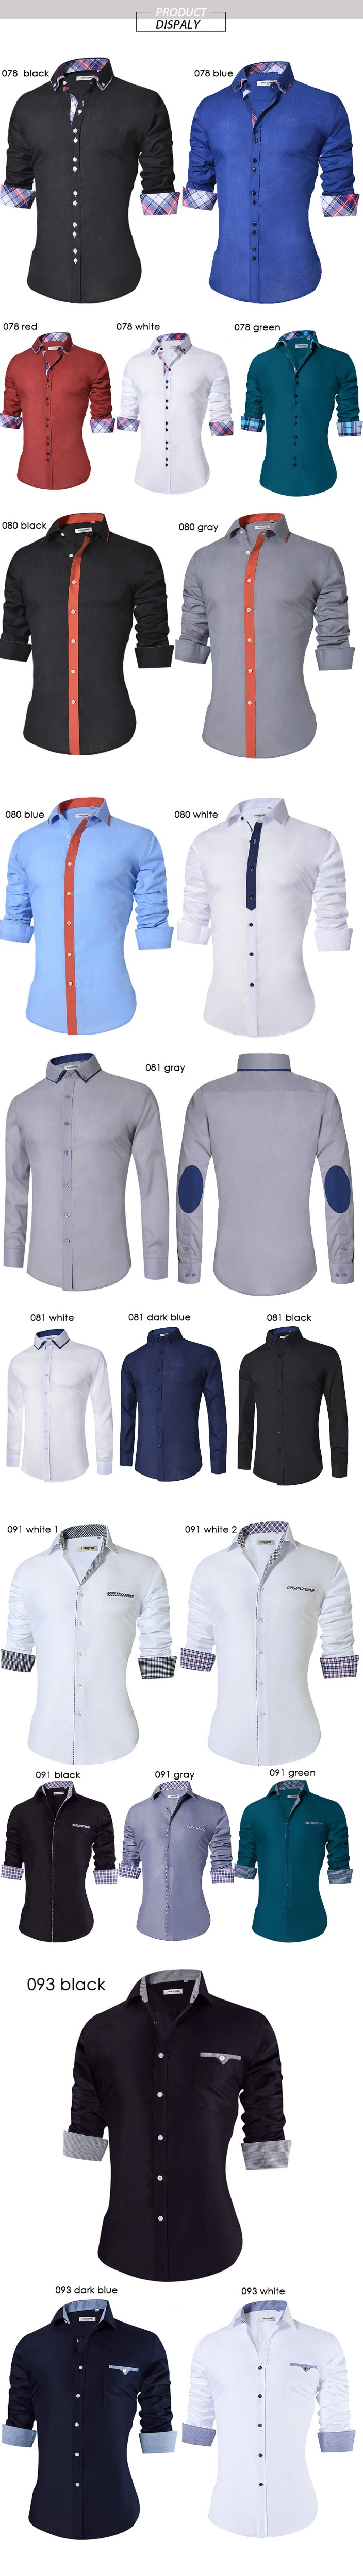 18 Men's Casual Shirt Slim Fit Men's Casual Button Down Shirt Long Sleeve Formal Dress Shirts Men Male Clothing Camisa 6